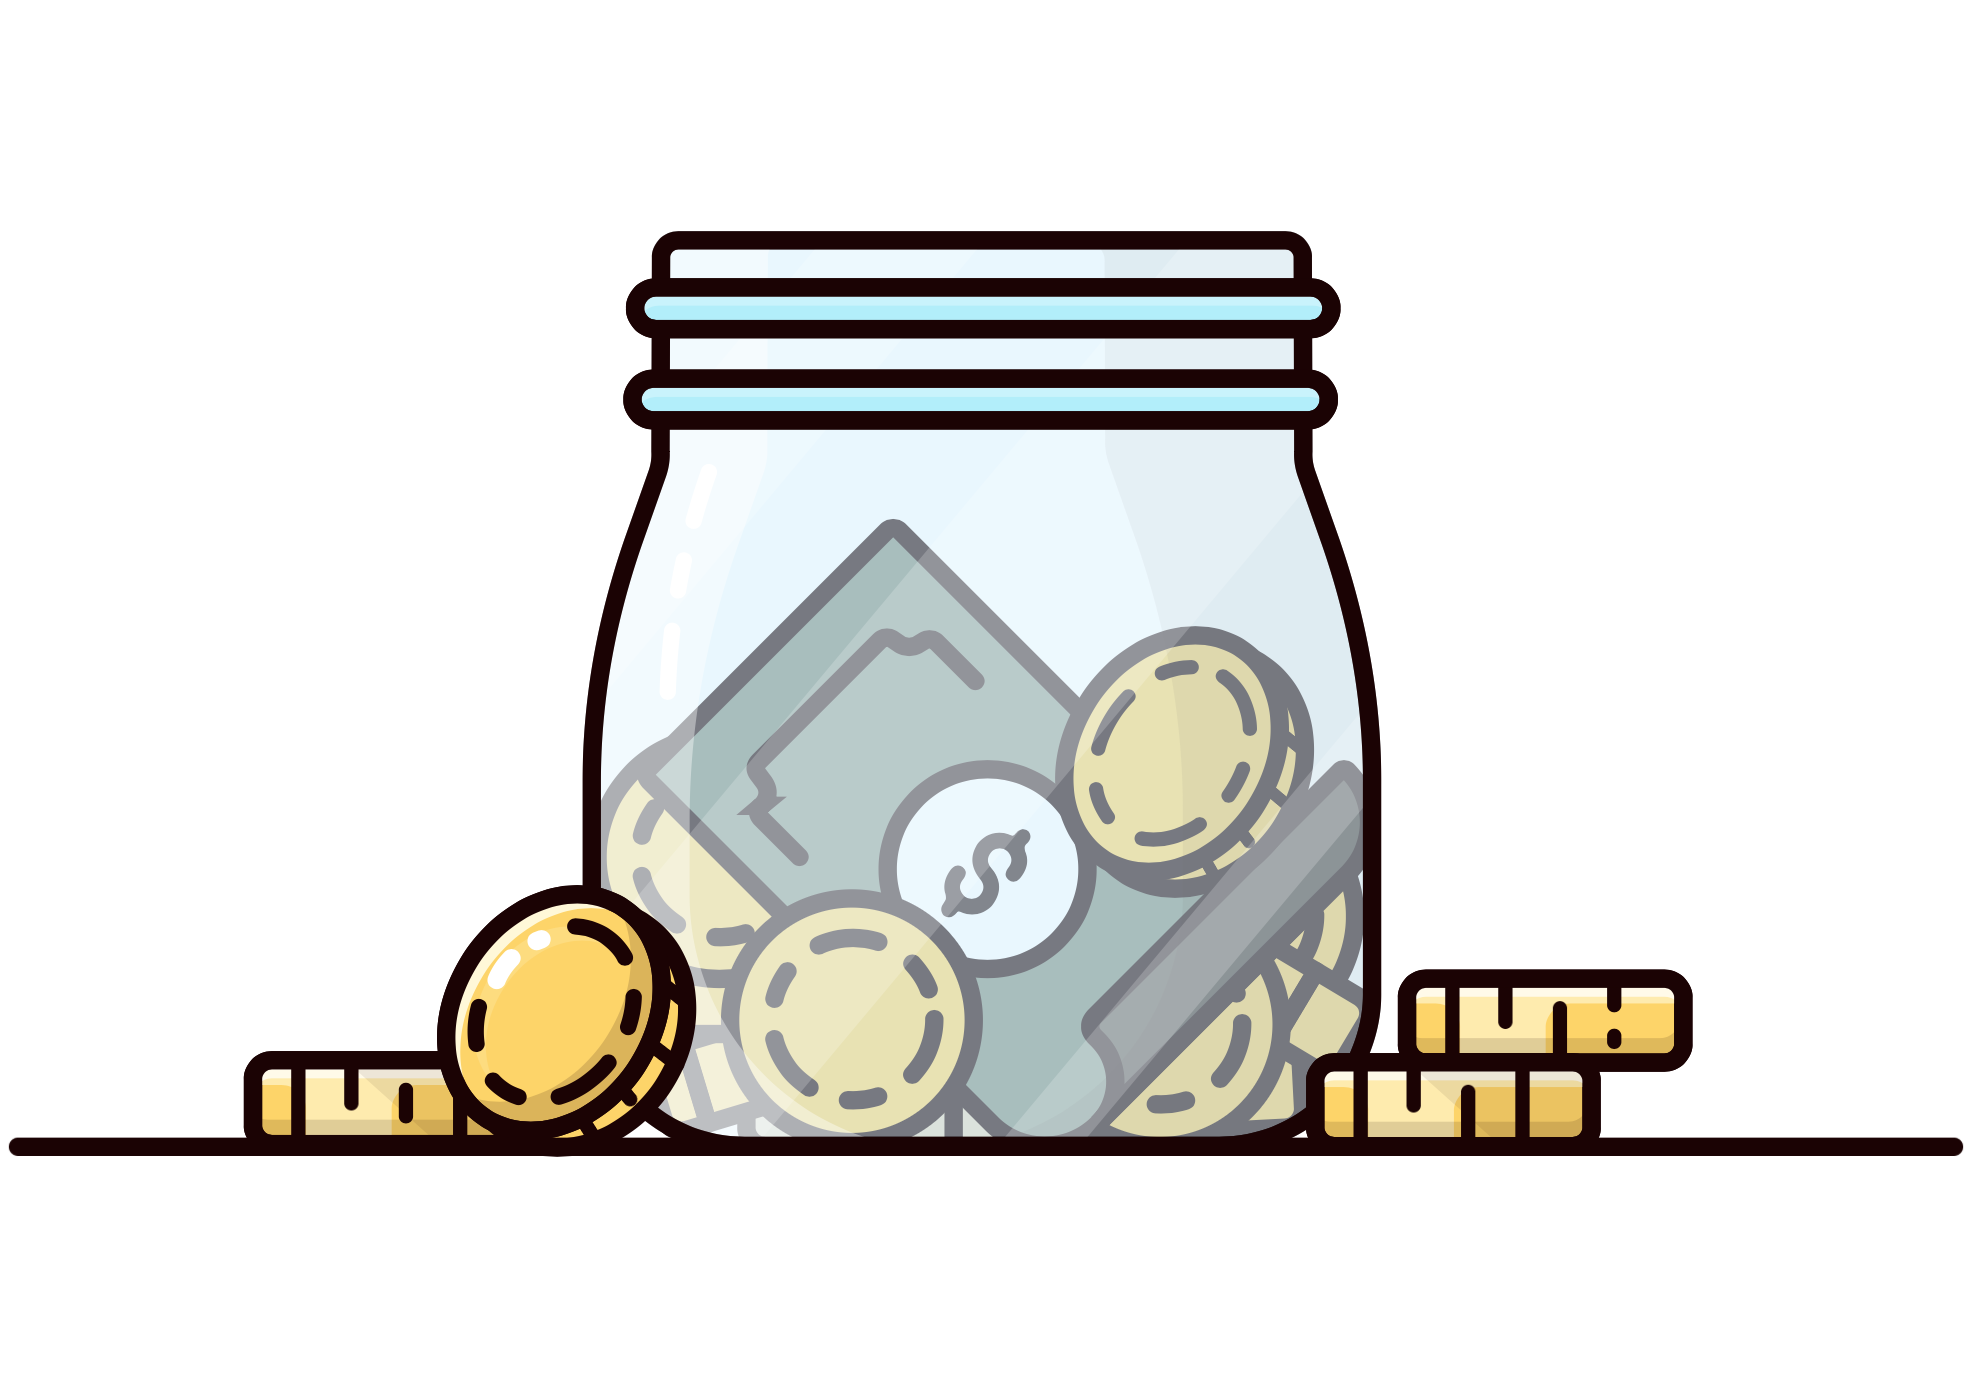 How to get started with Tip Jar WP